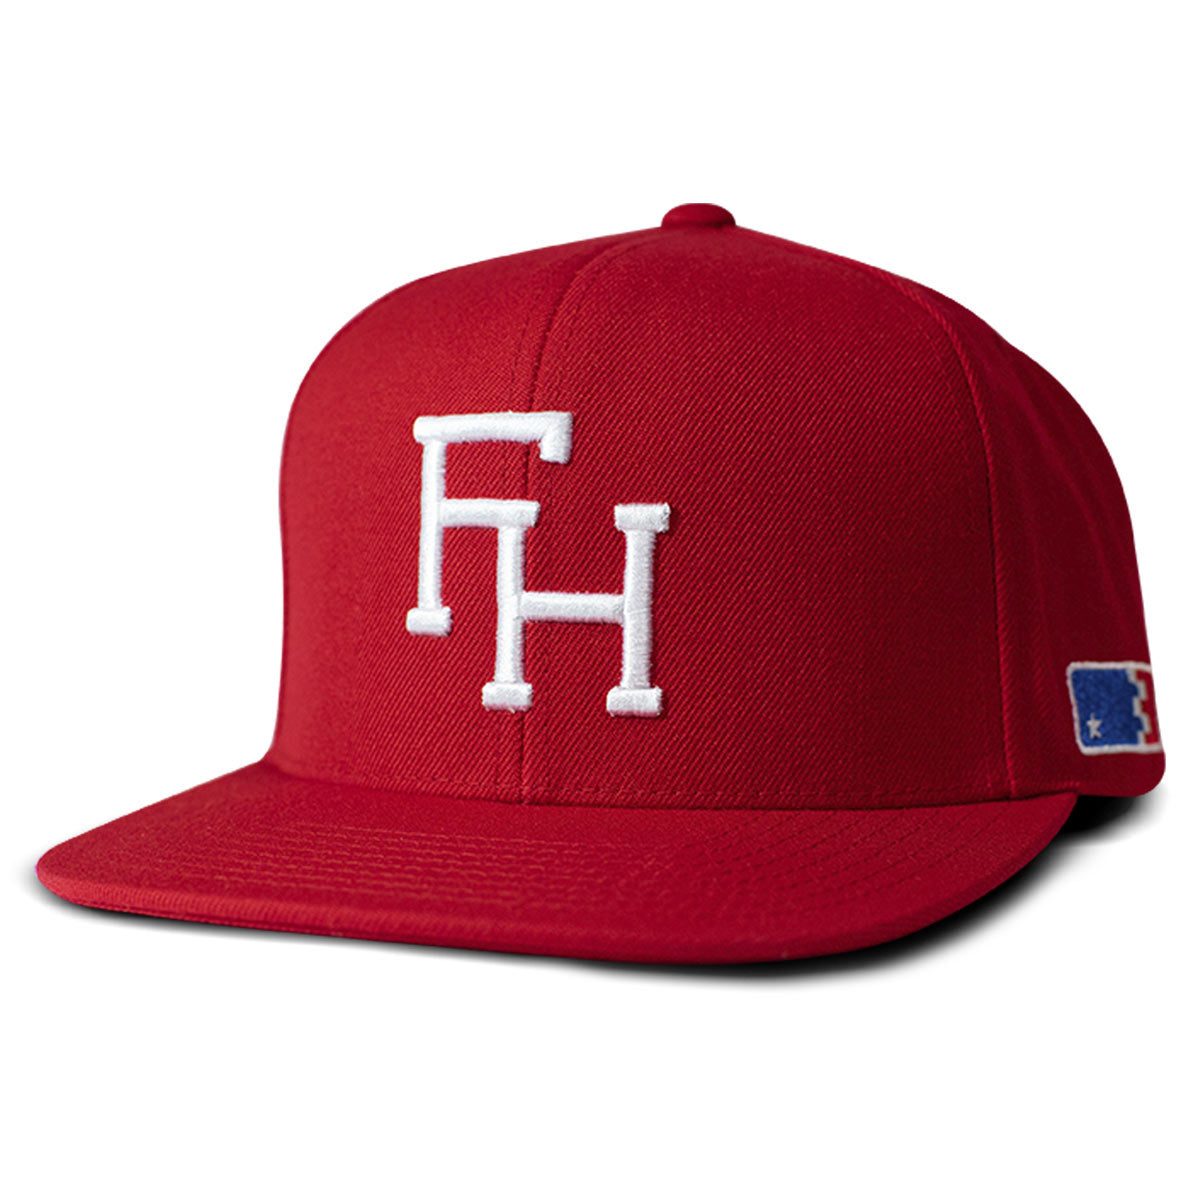 All Star Hat - Red